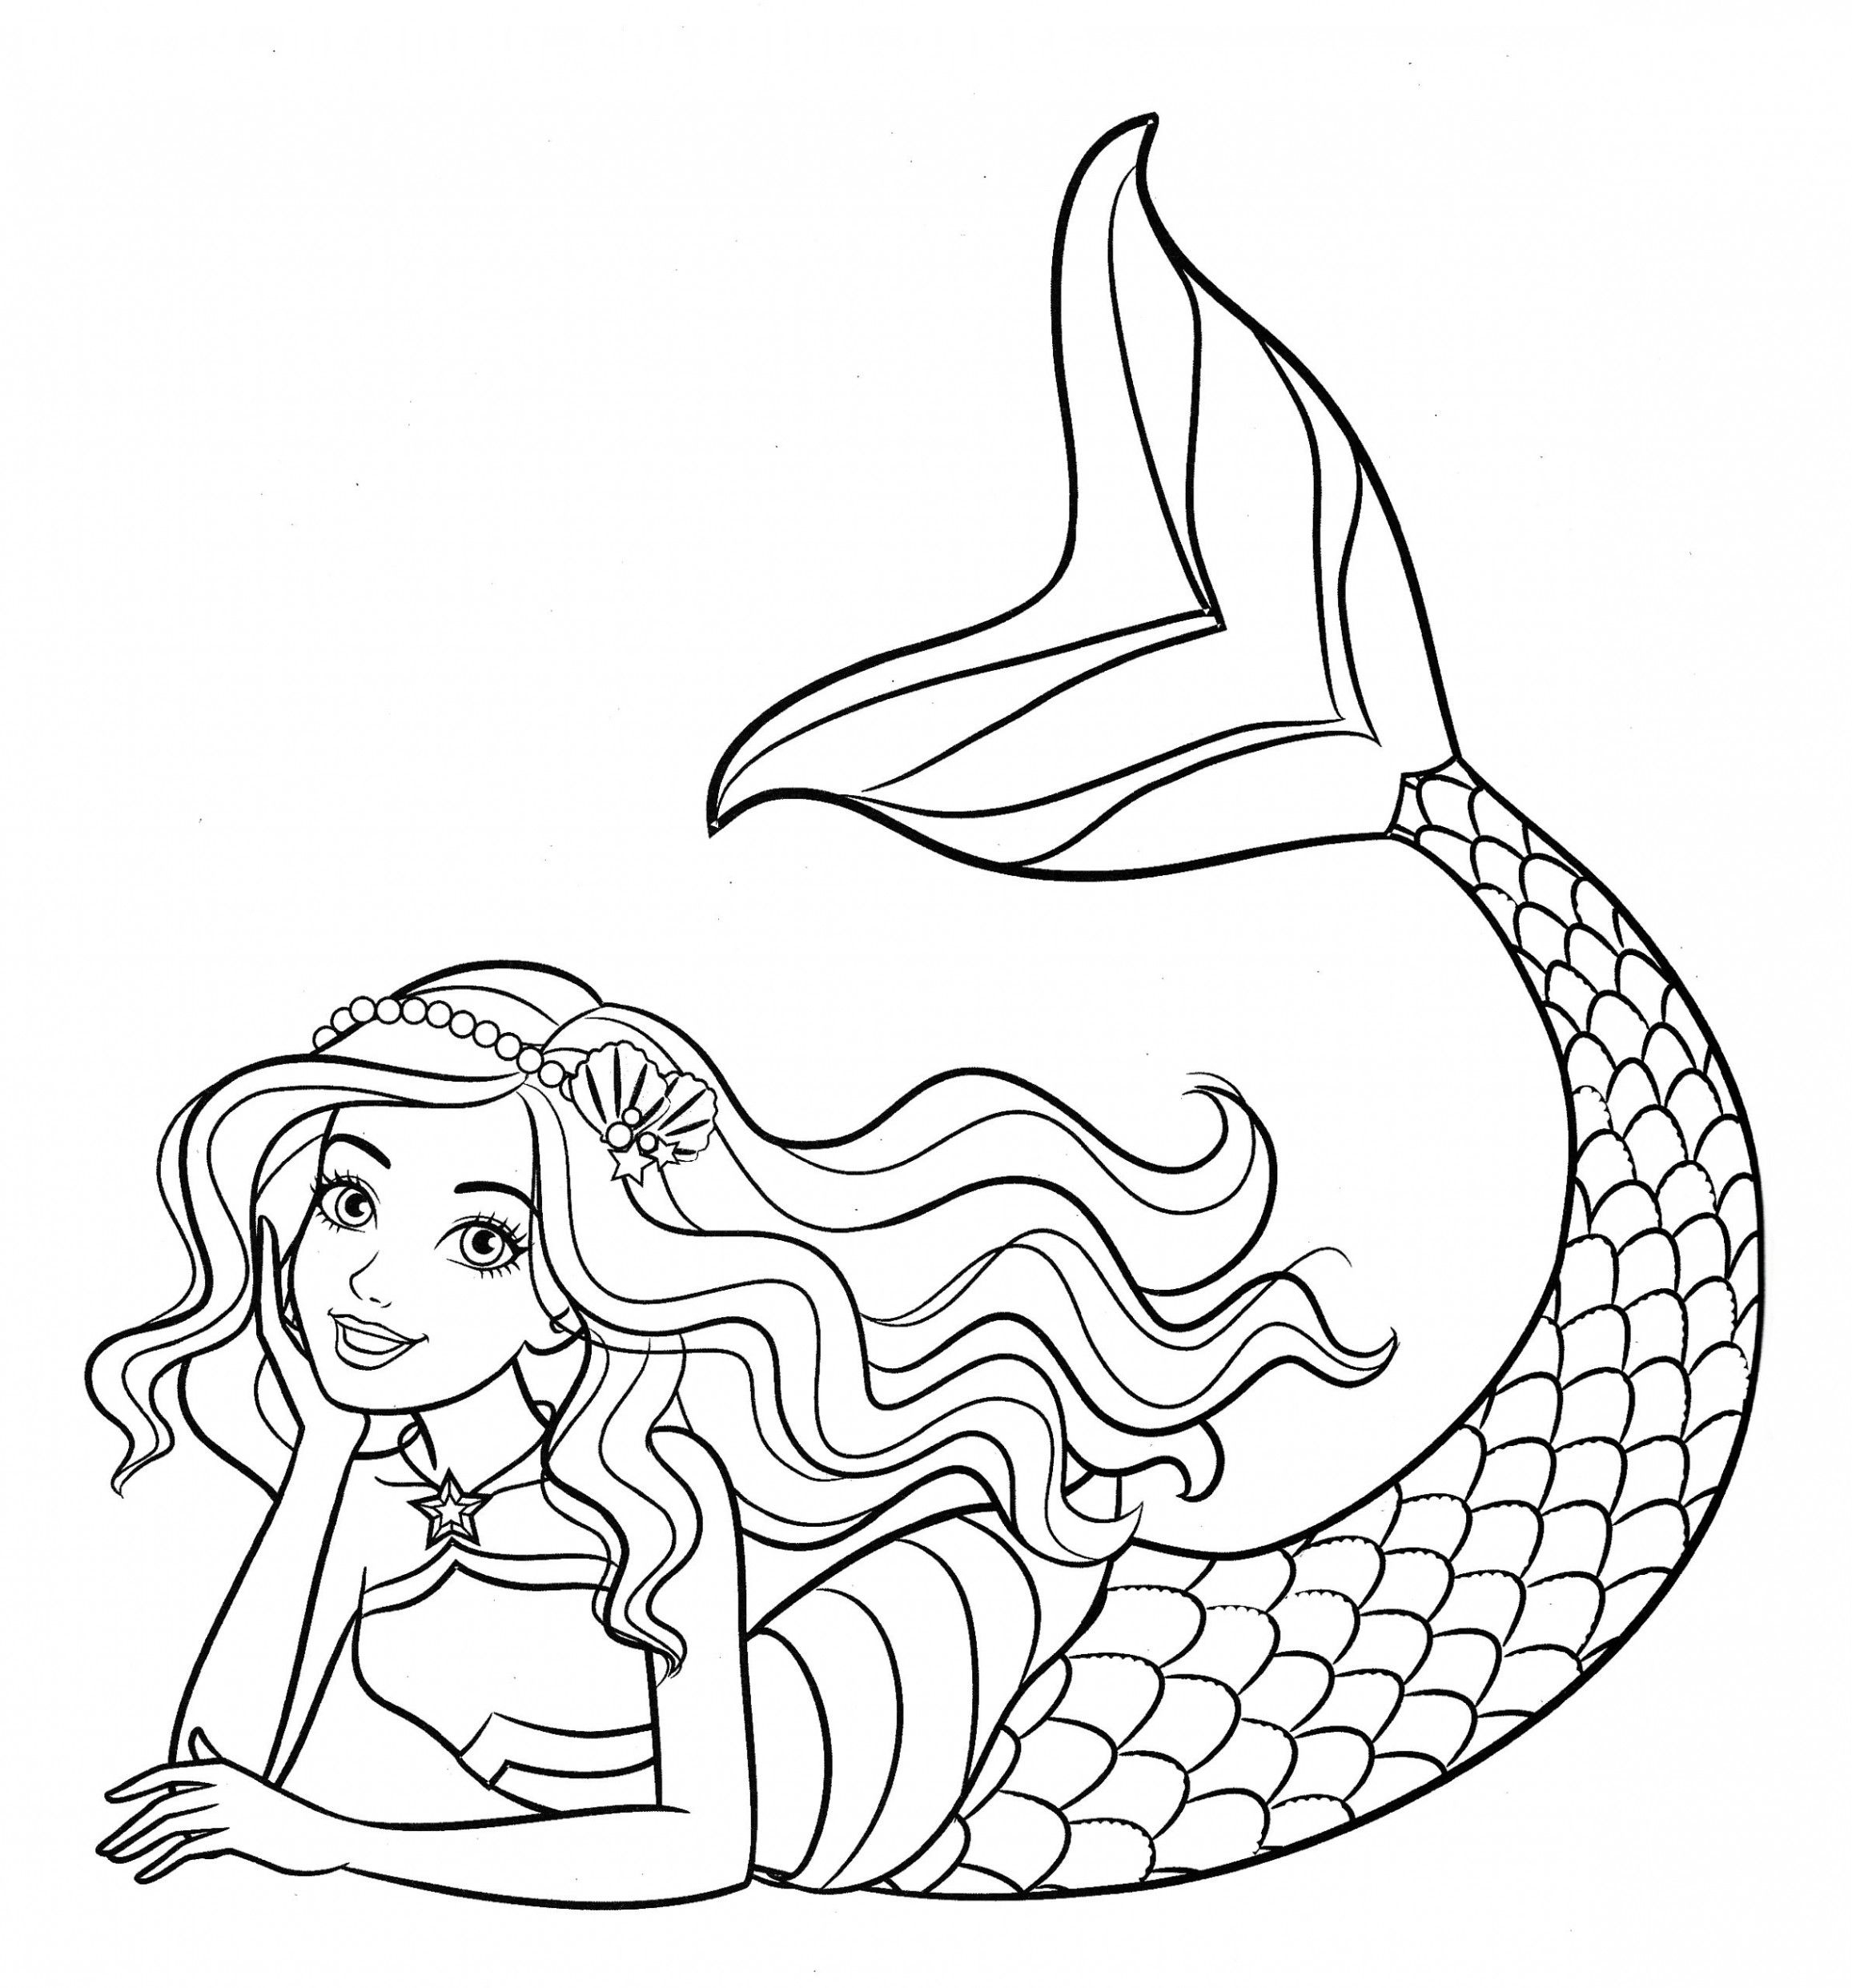 8 Pretty Mermaid Coloring Pages Mermaid Coloring Pages Unicorn Coloring Pages Dolphin Coloring Pages